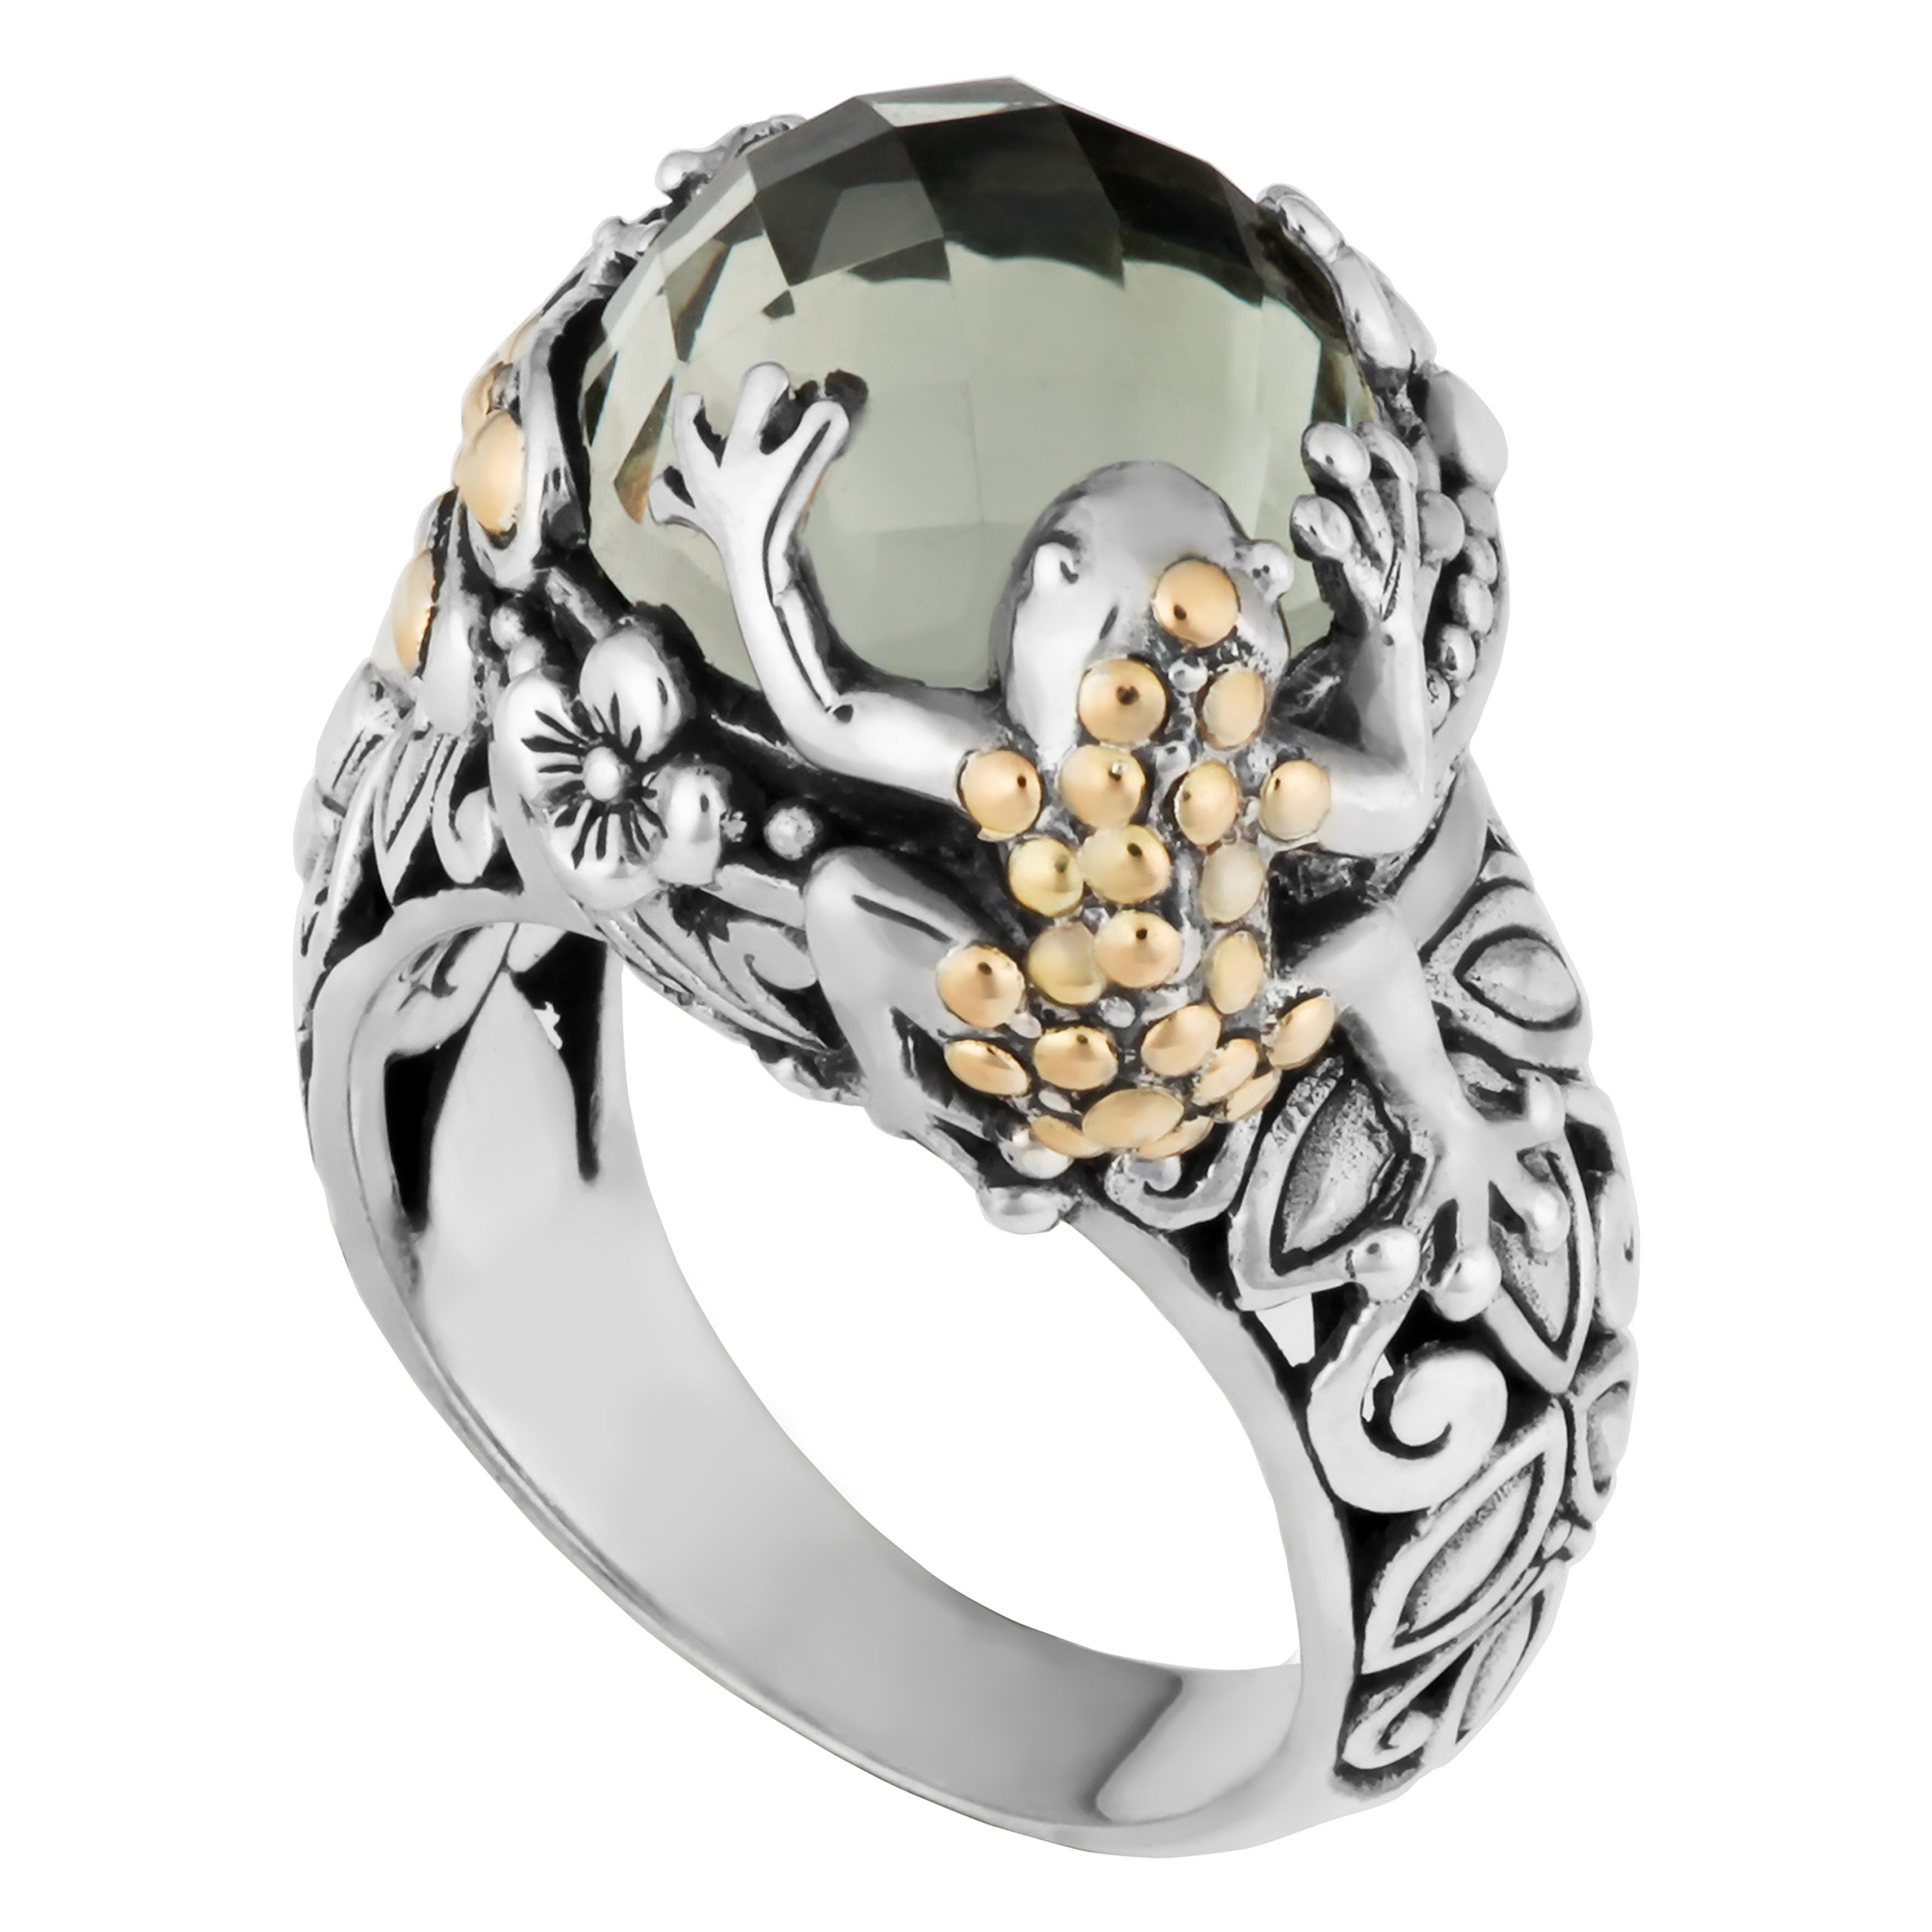 Artisanica 18 Karat Yellow Gold And Sterling Silver Green Quartz Tropical Frog Dragonfly Ring